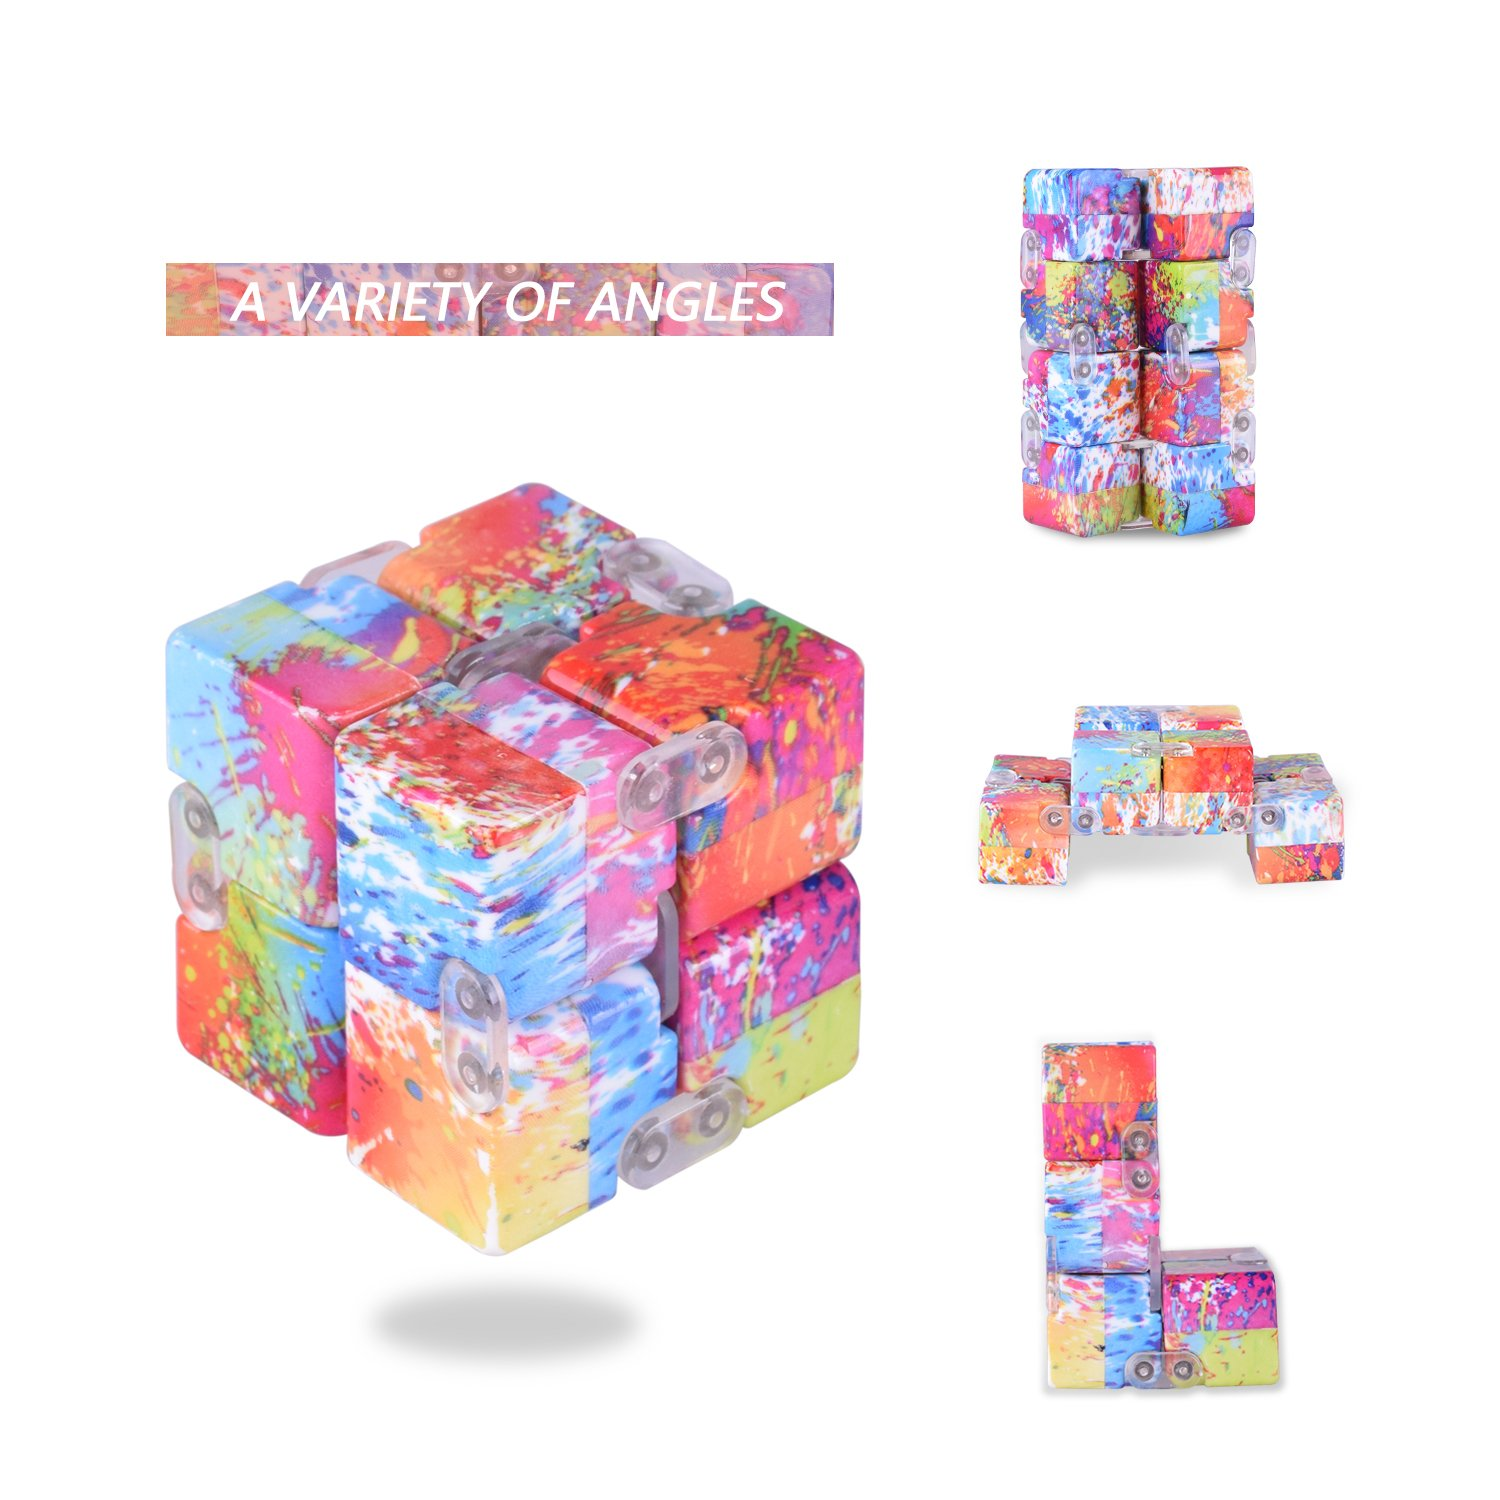 LEEHUR Infinite Cube Toys Fidget Blocks Relieve Stress & Anxiety ADHD Toy